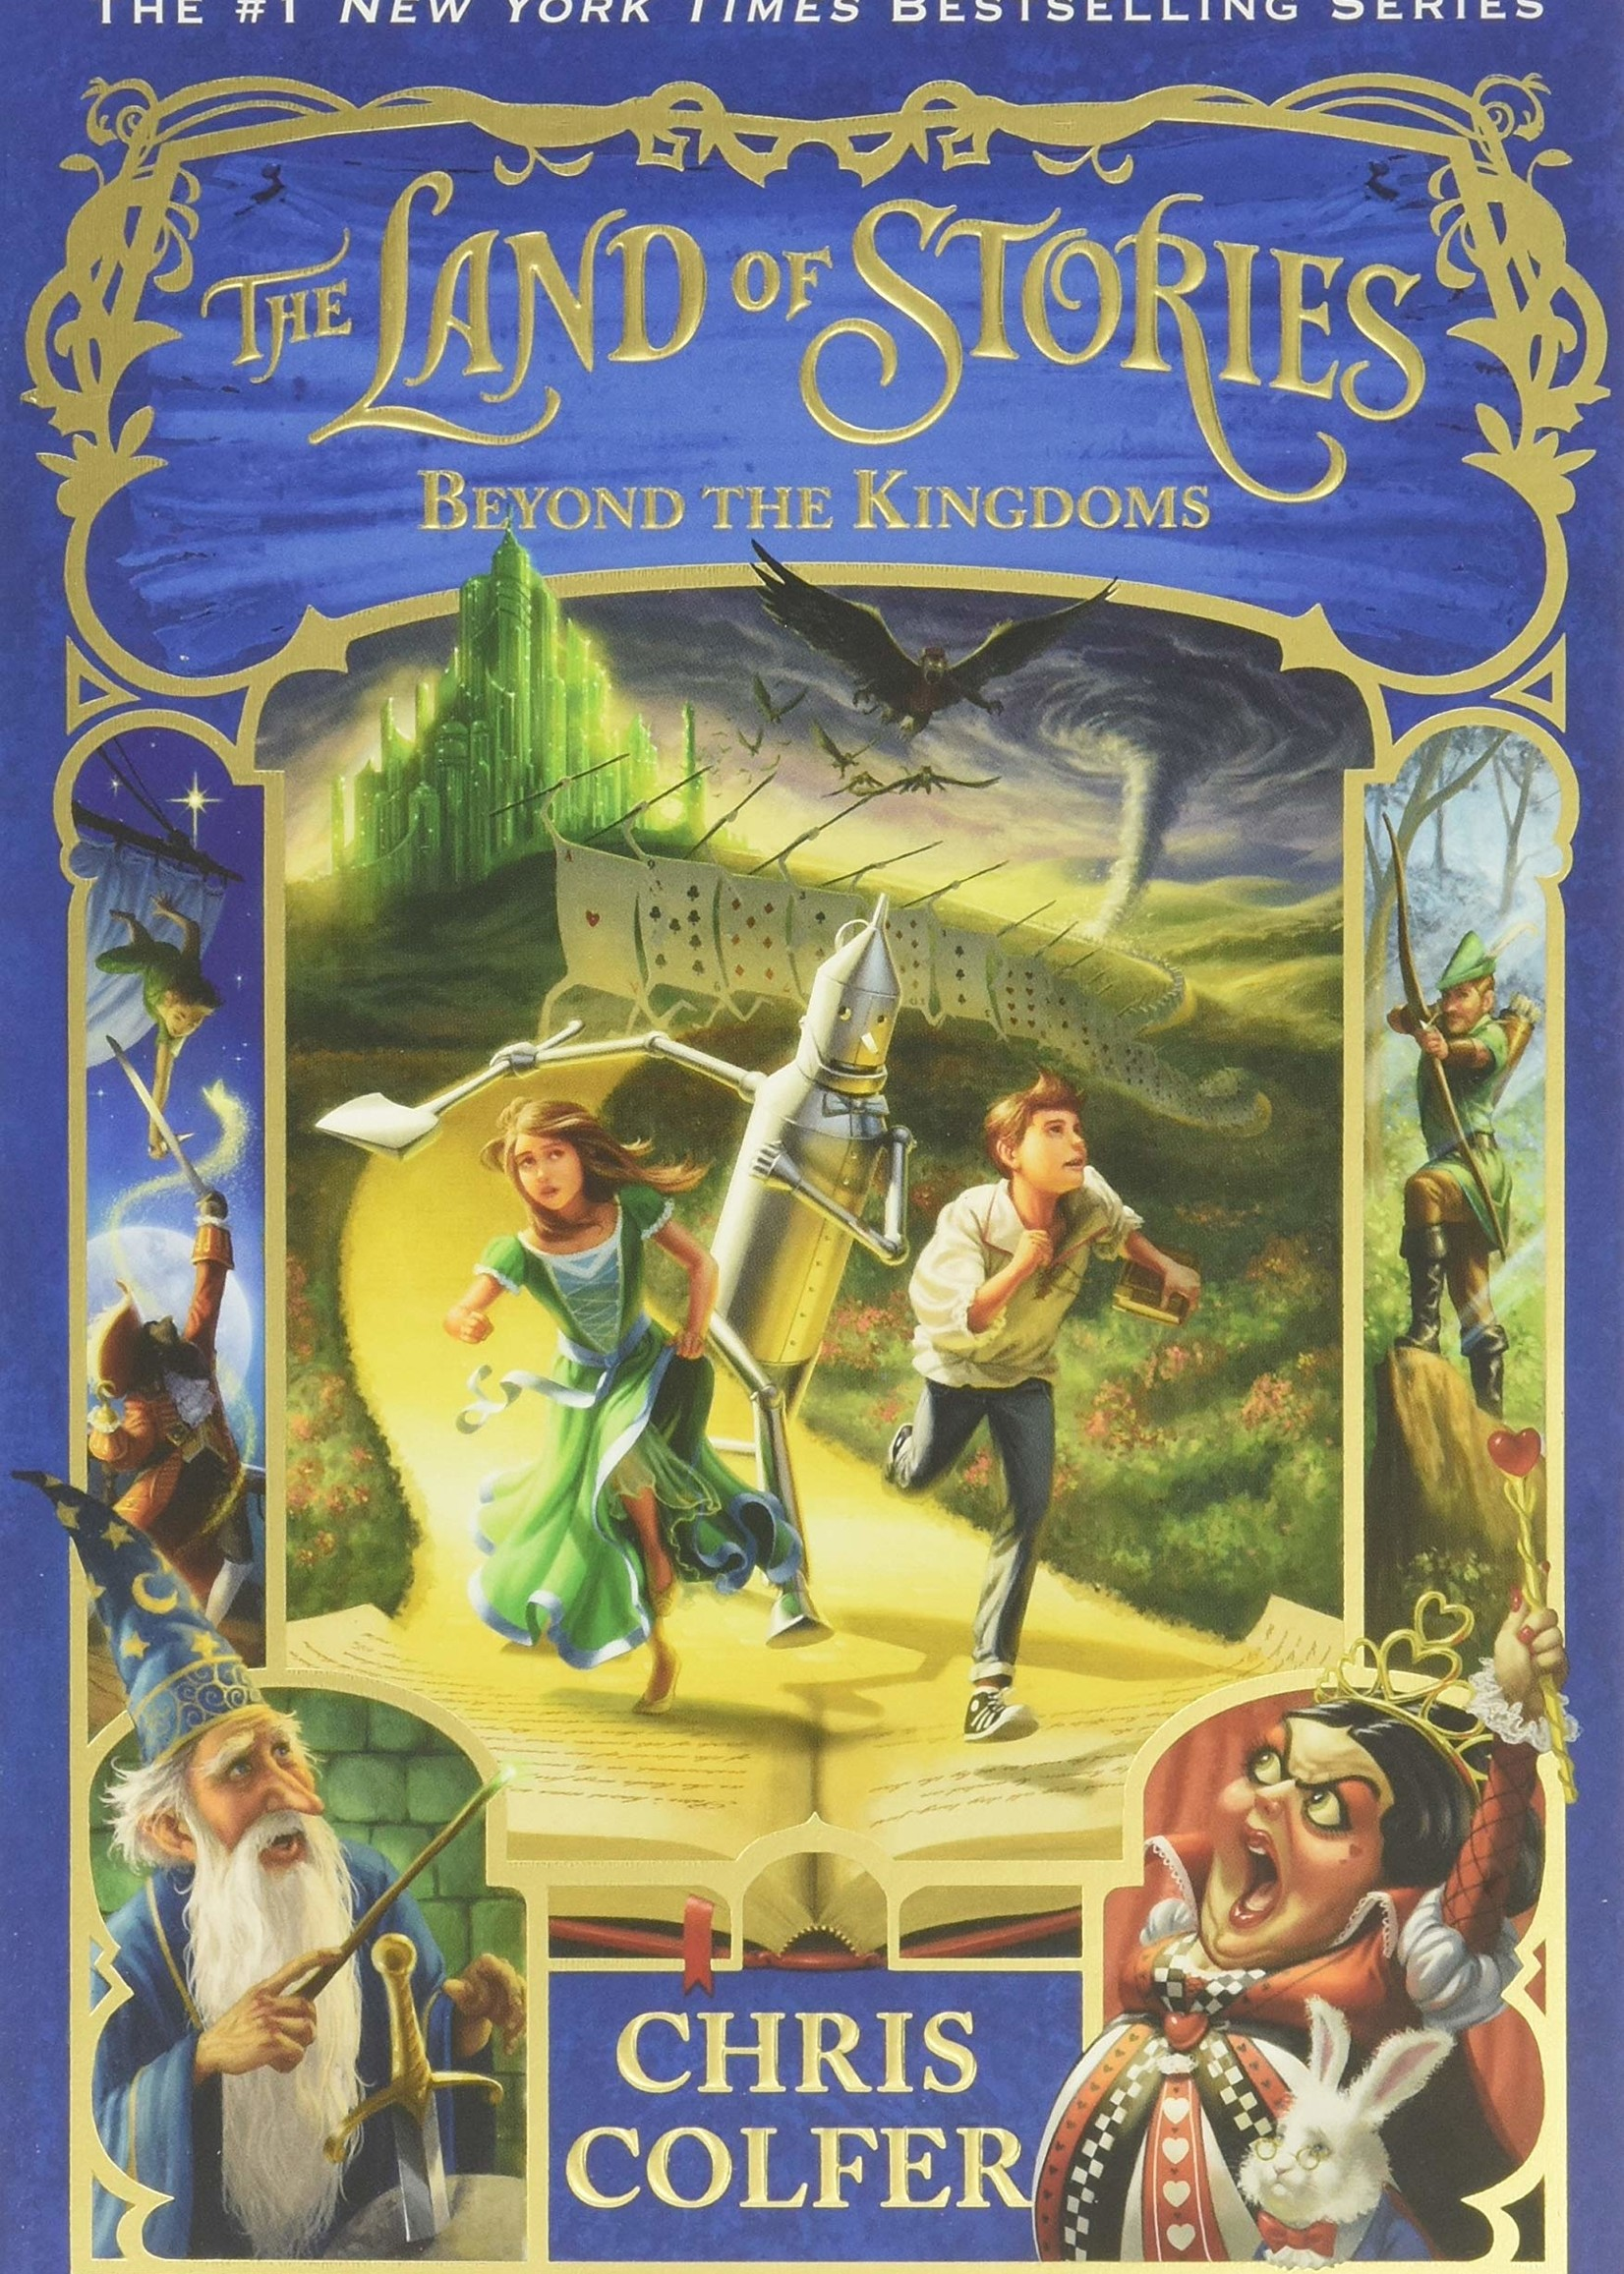 The Land of Stories #04, Beyond the Kingdoms - Paperback